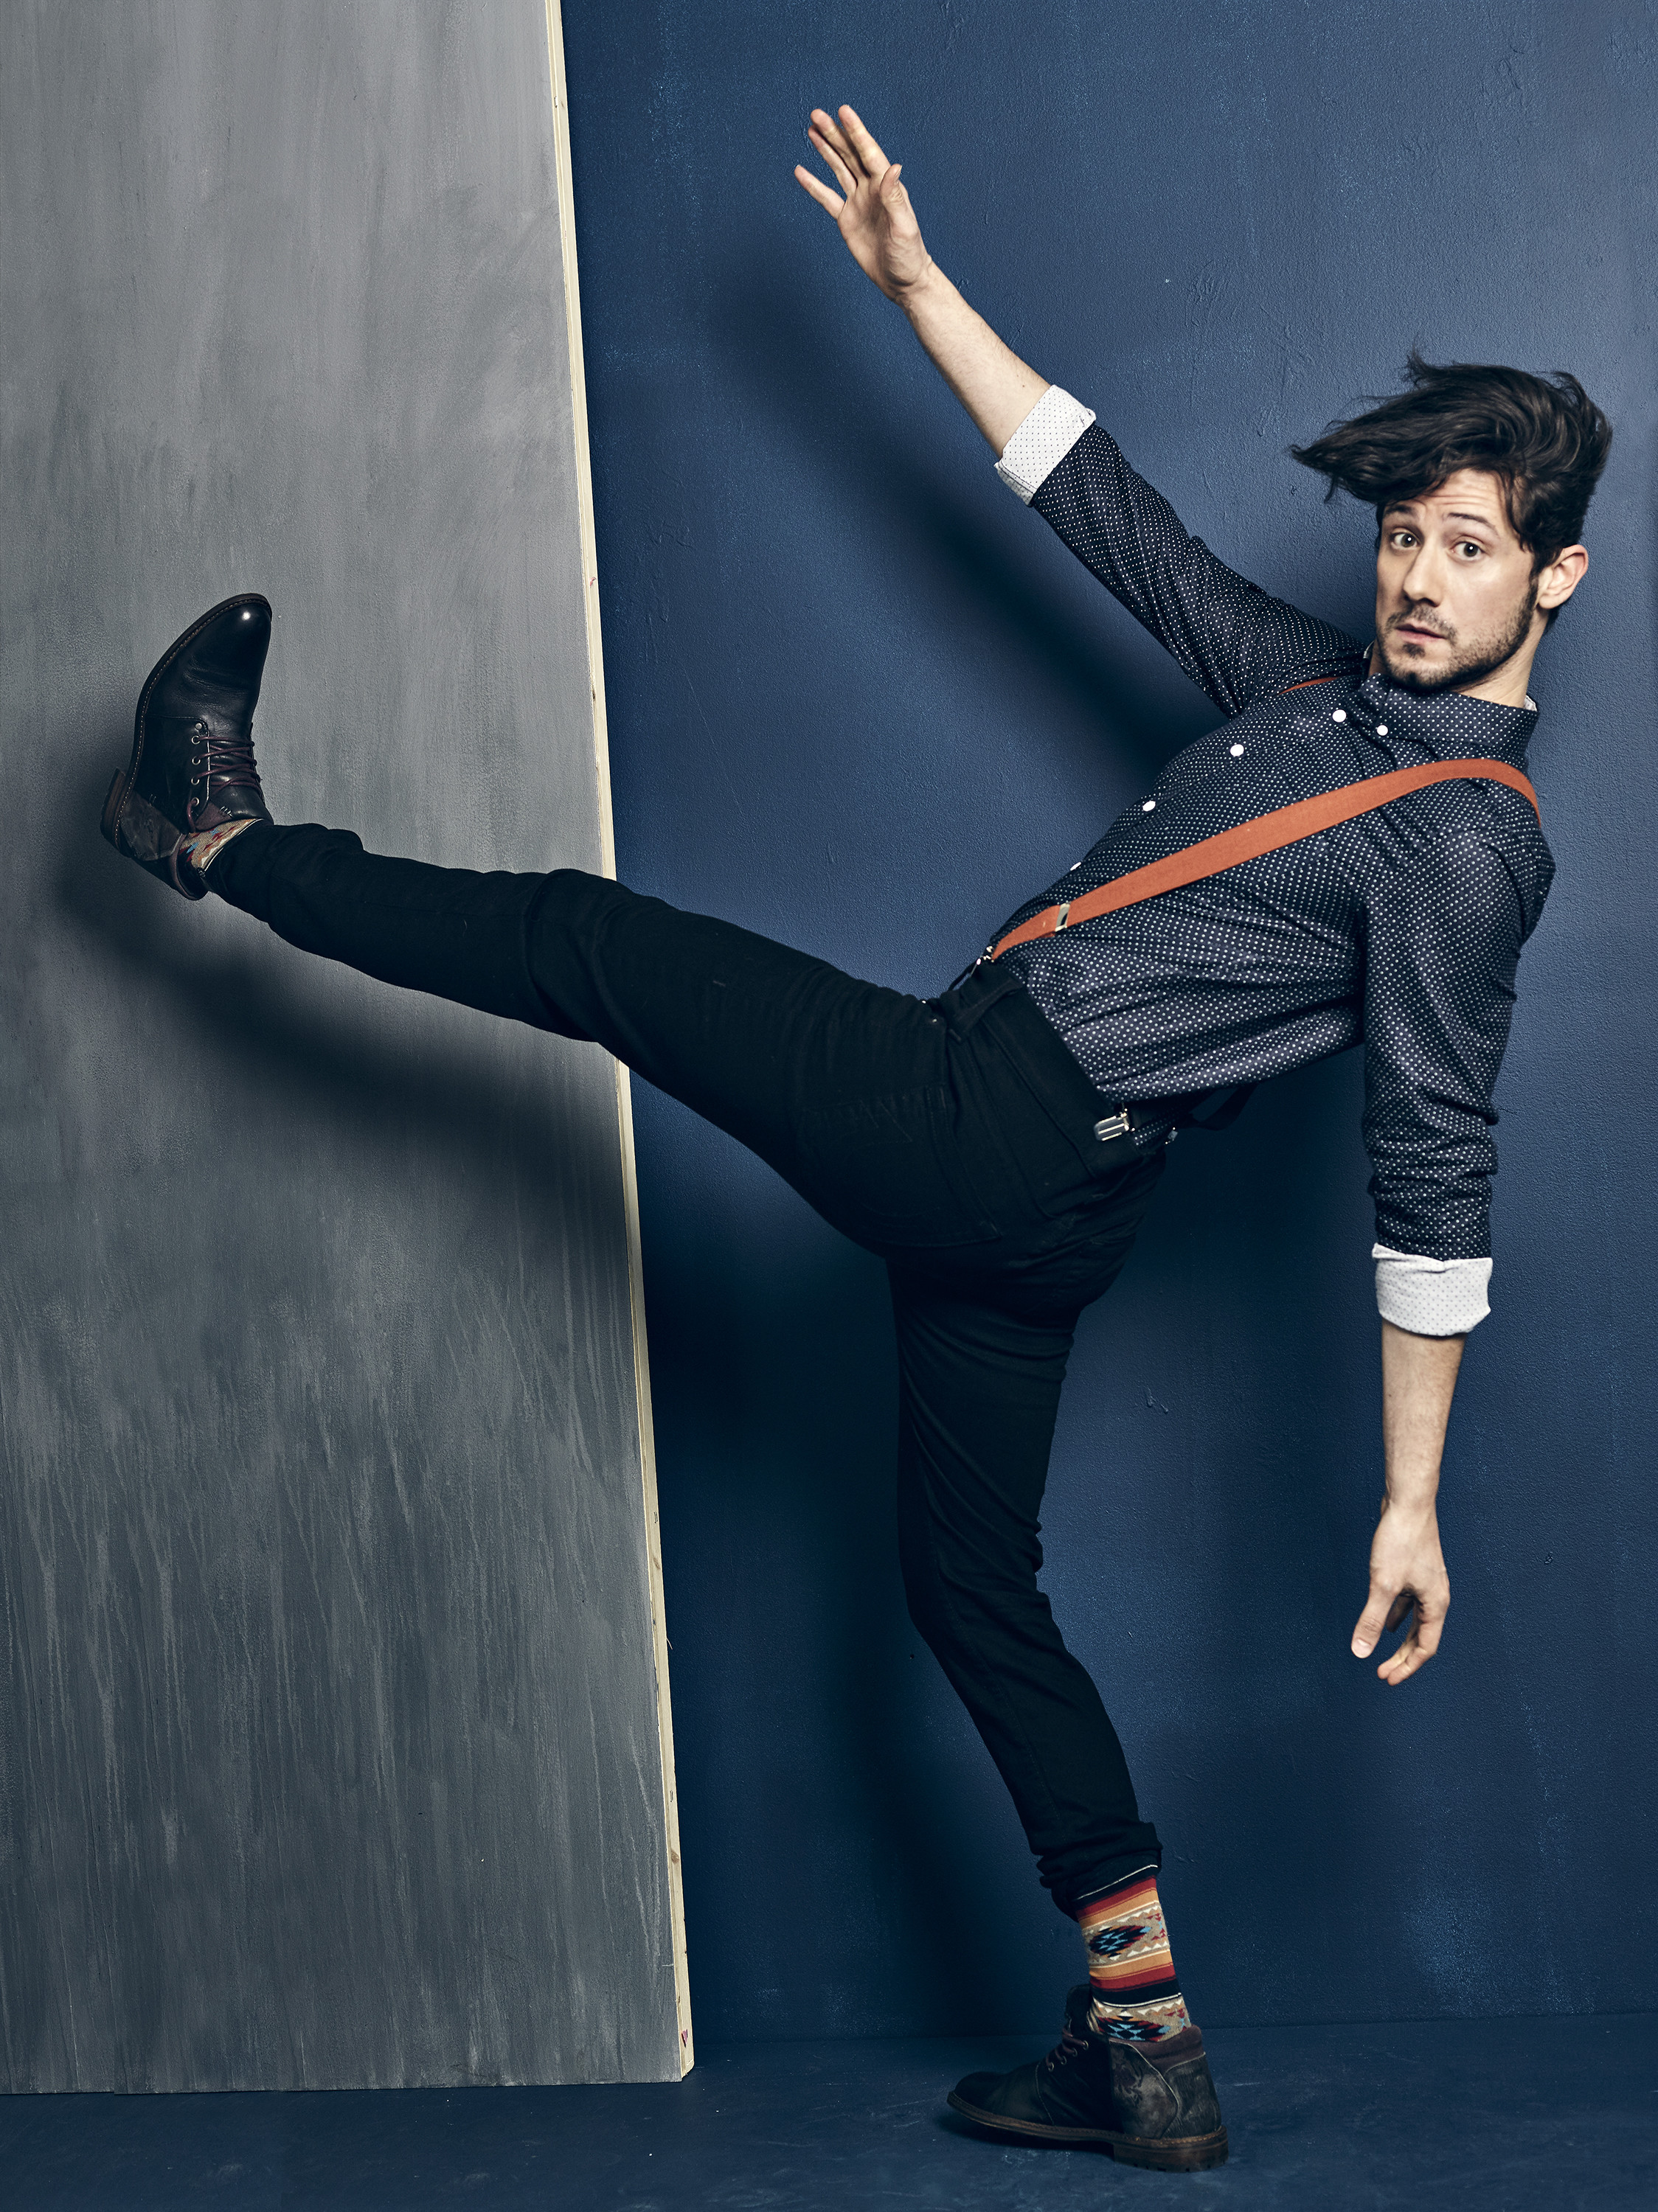 Hale Appleman of 'The Magicians' on Eliot's New Lover, the Show's Most Controversial Moments, & Fighting for Human Rights